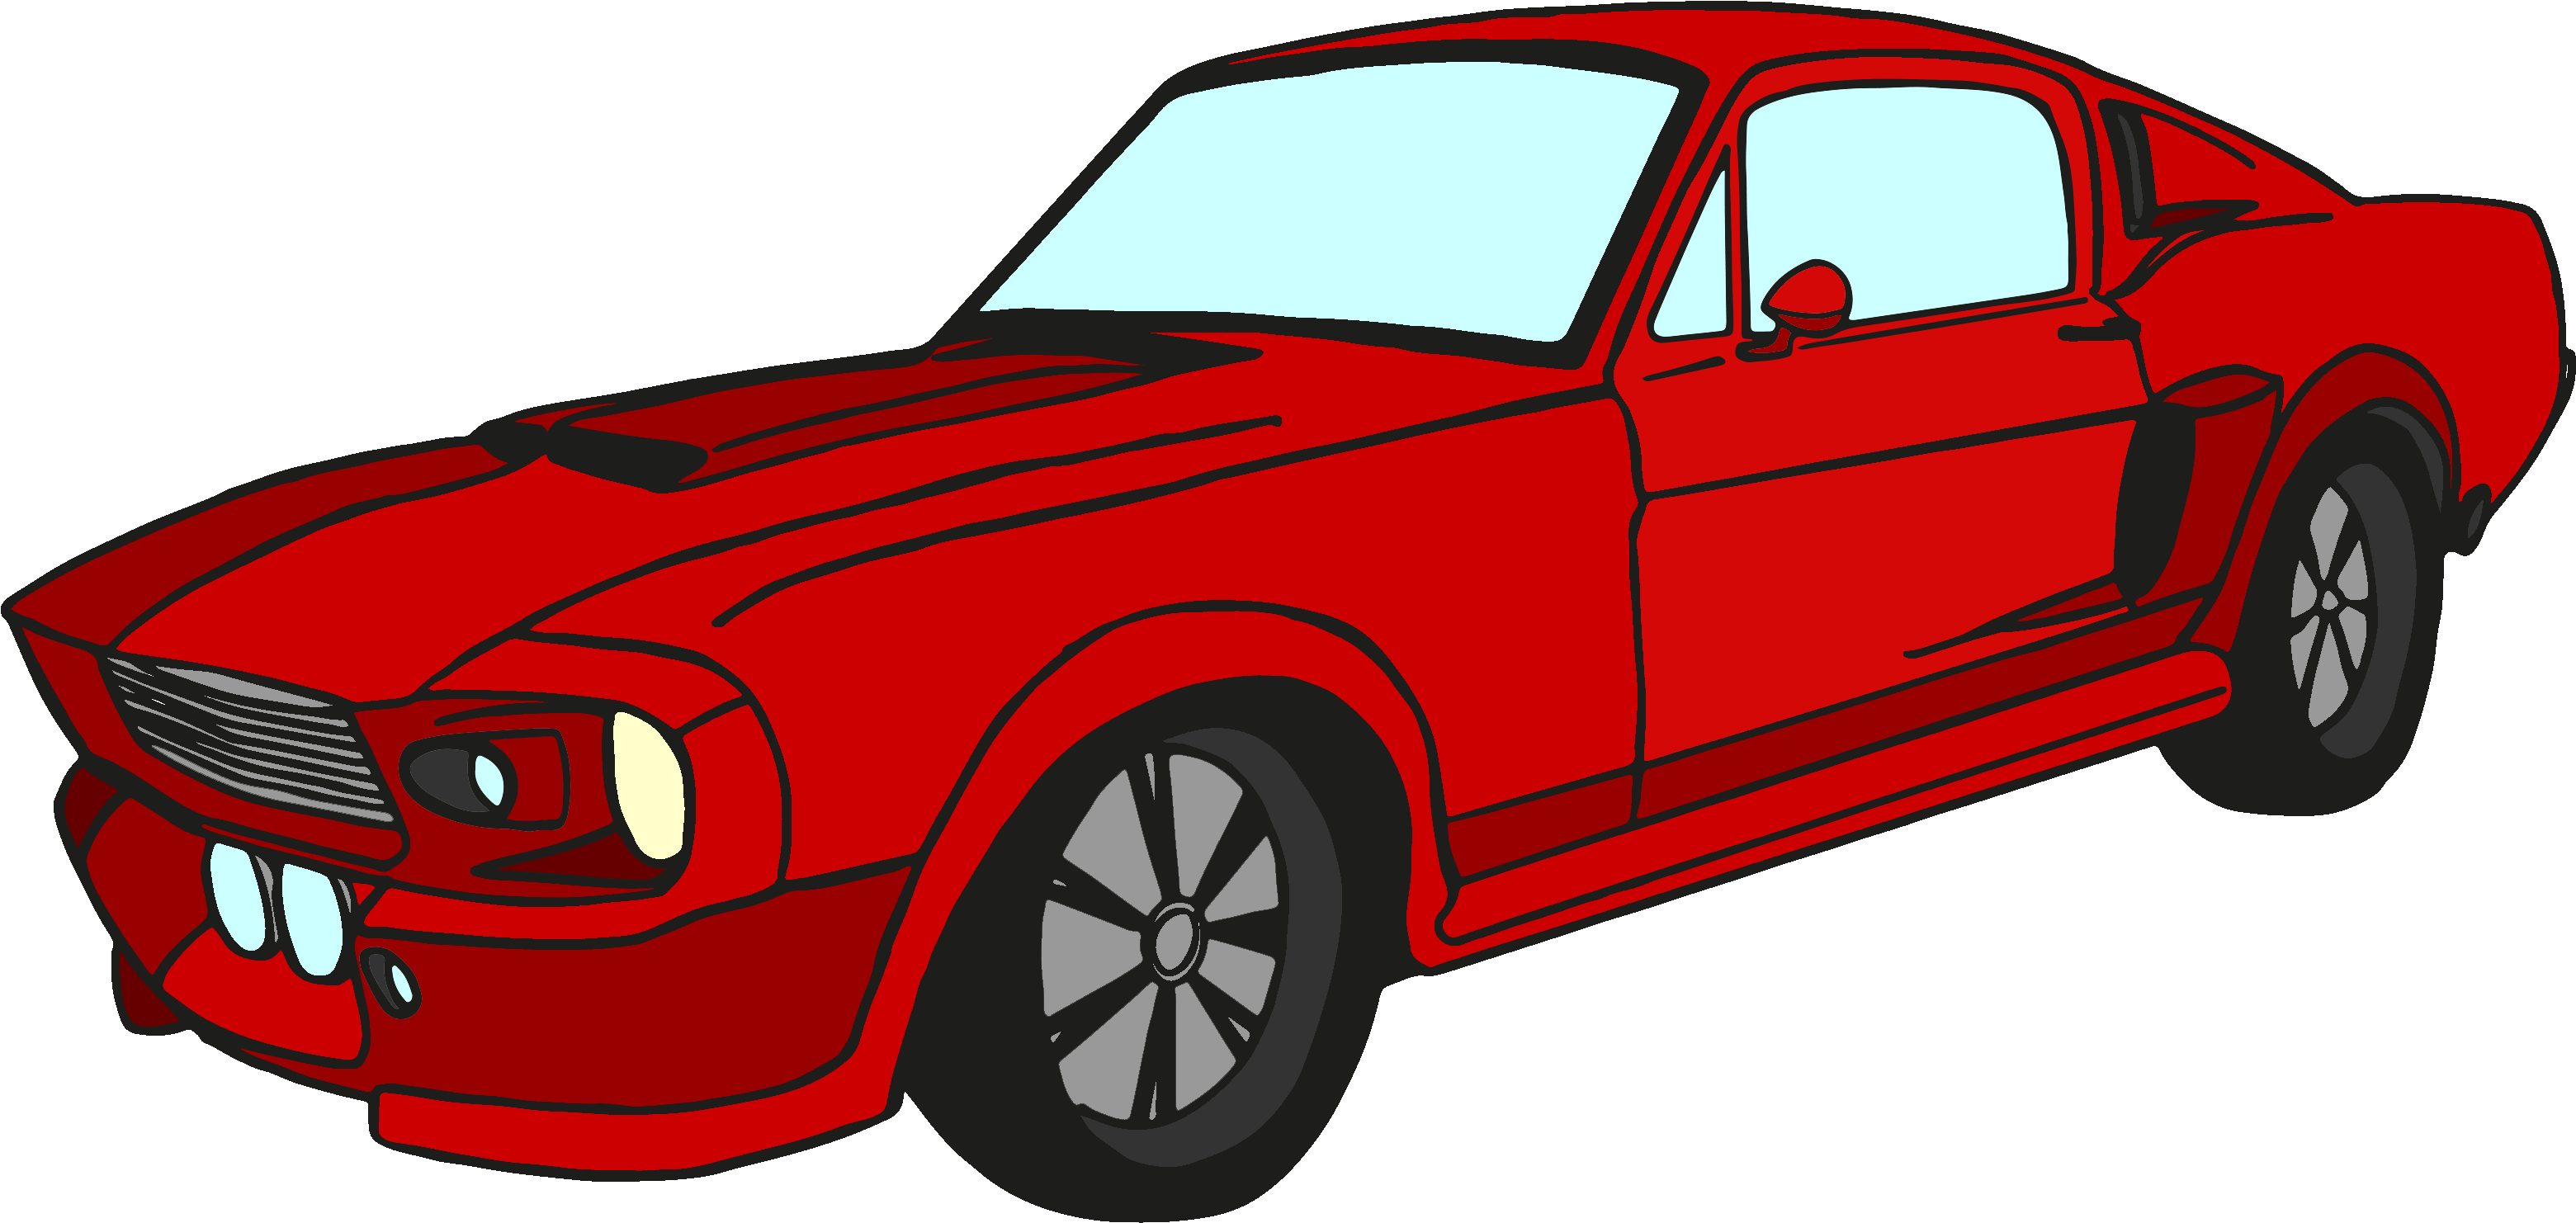 Download Vector Royalty Free Stock Classic Mustang Car Clipart